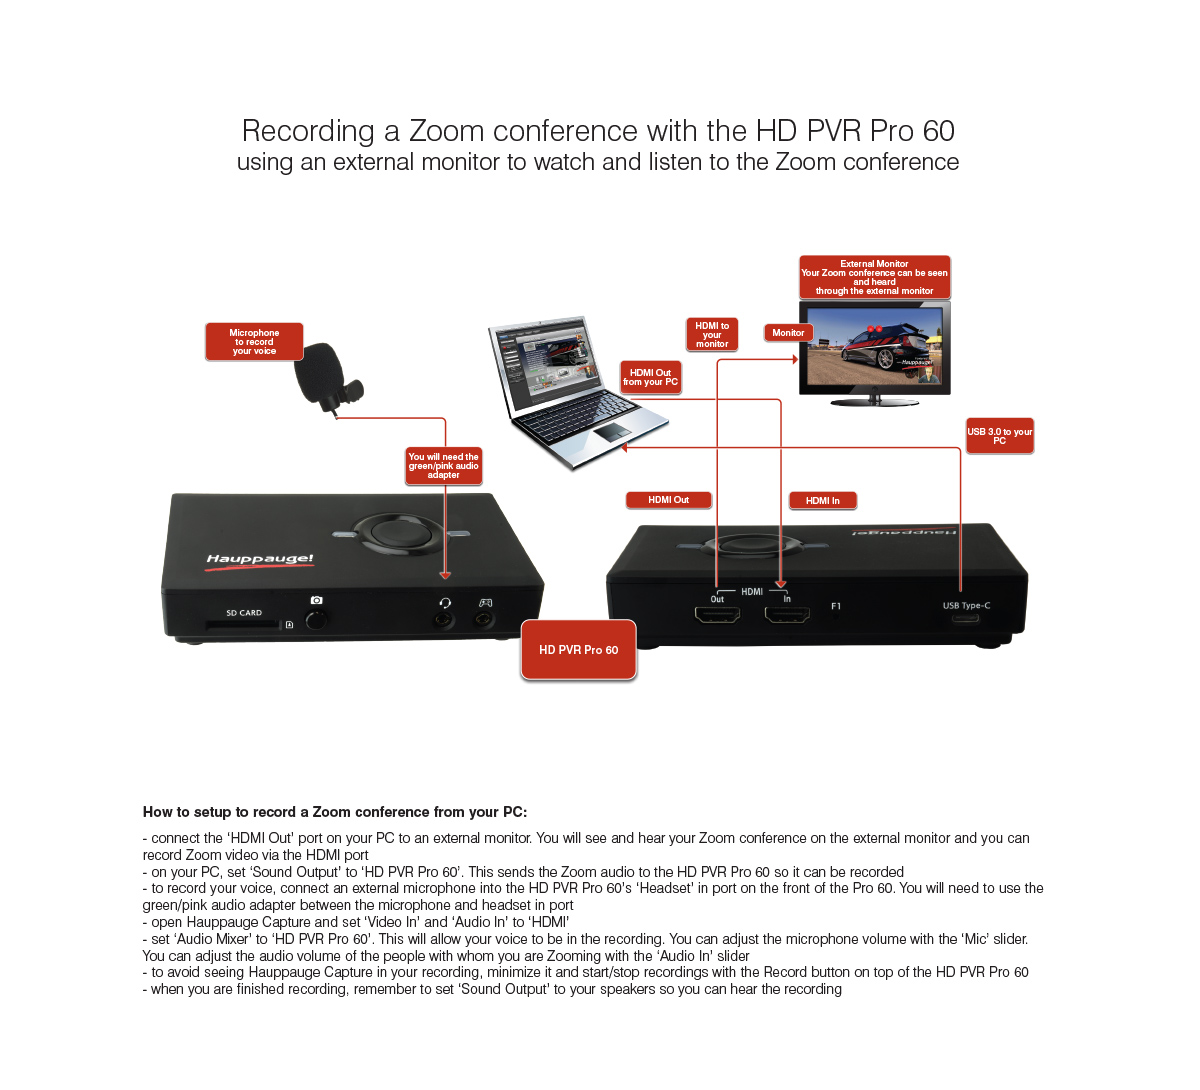 Recording a Zoom conference with the HD PVR Pro 60